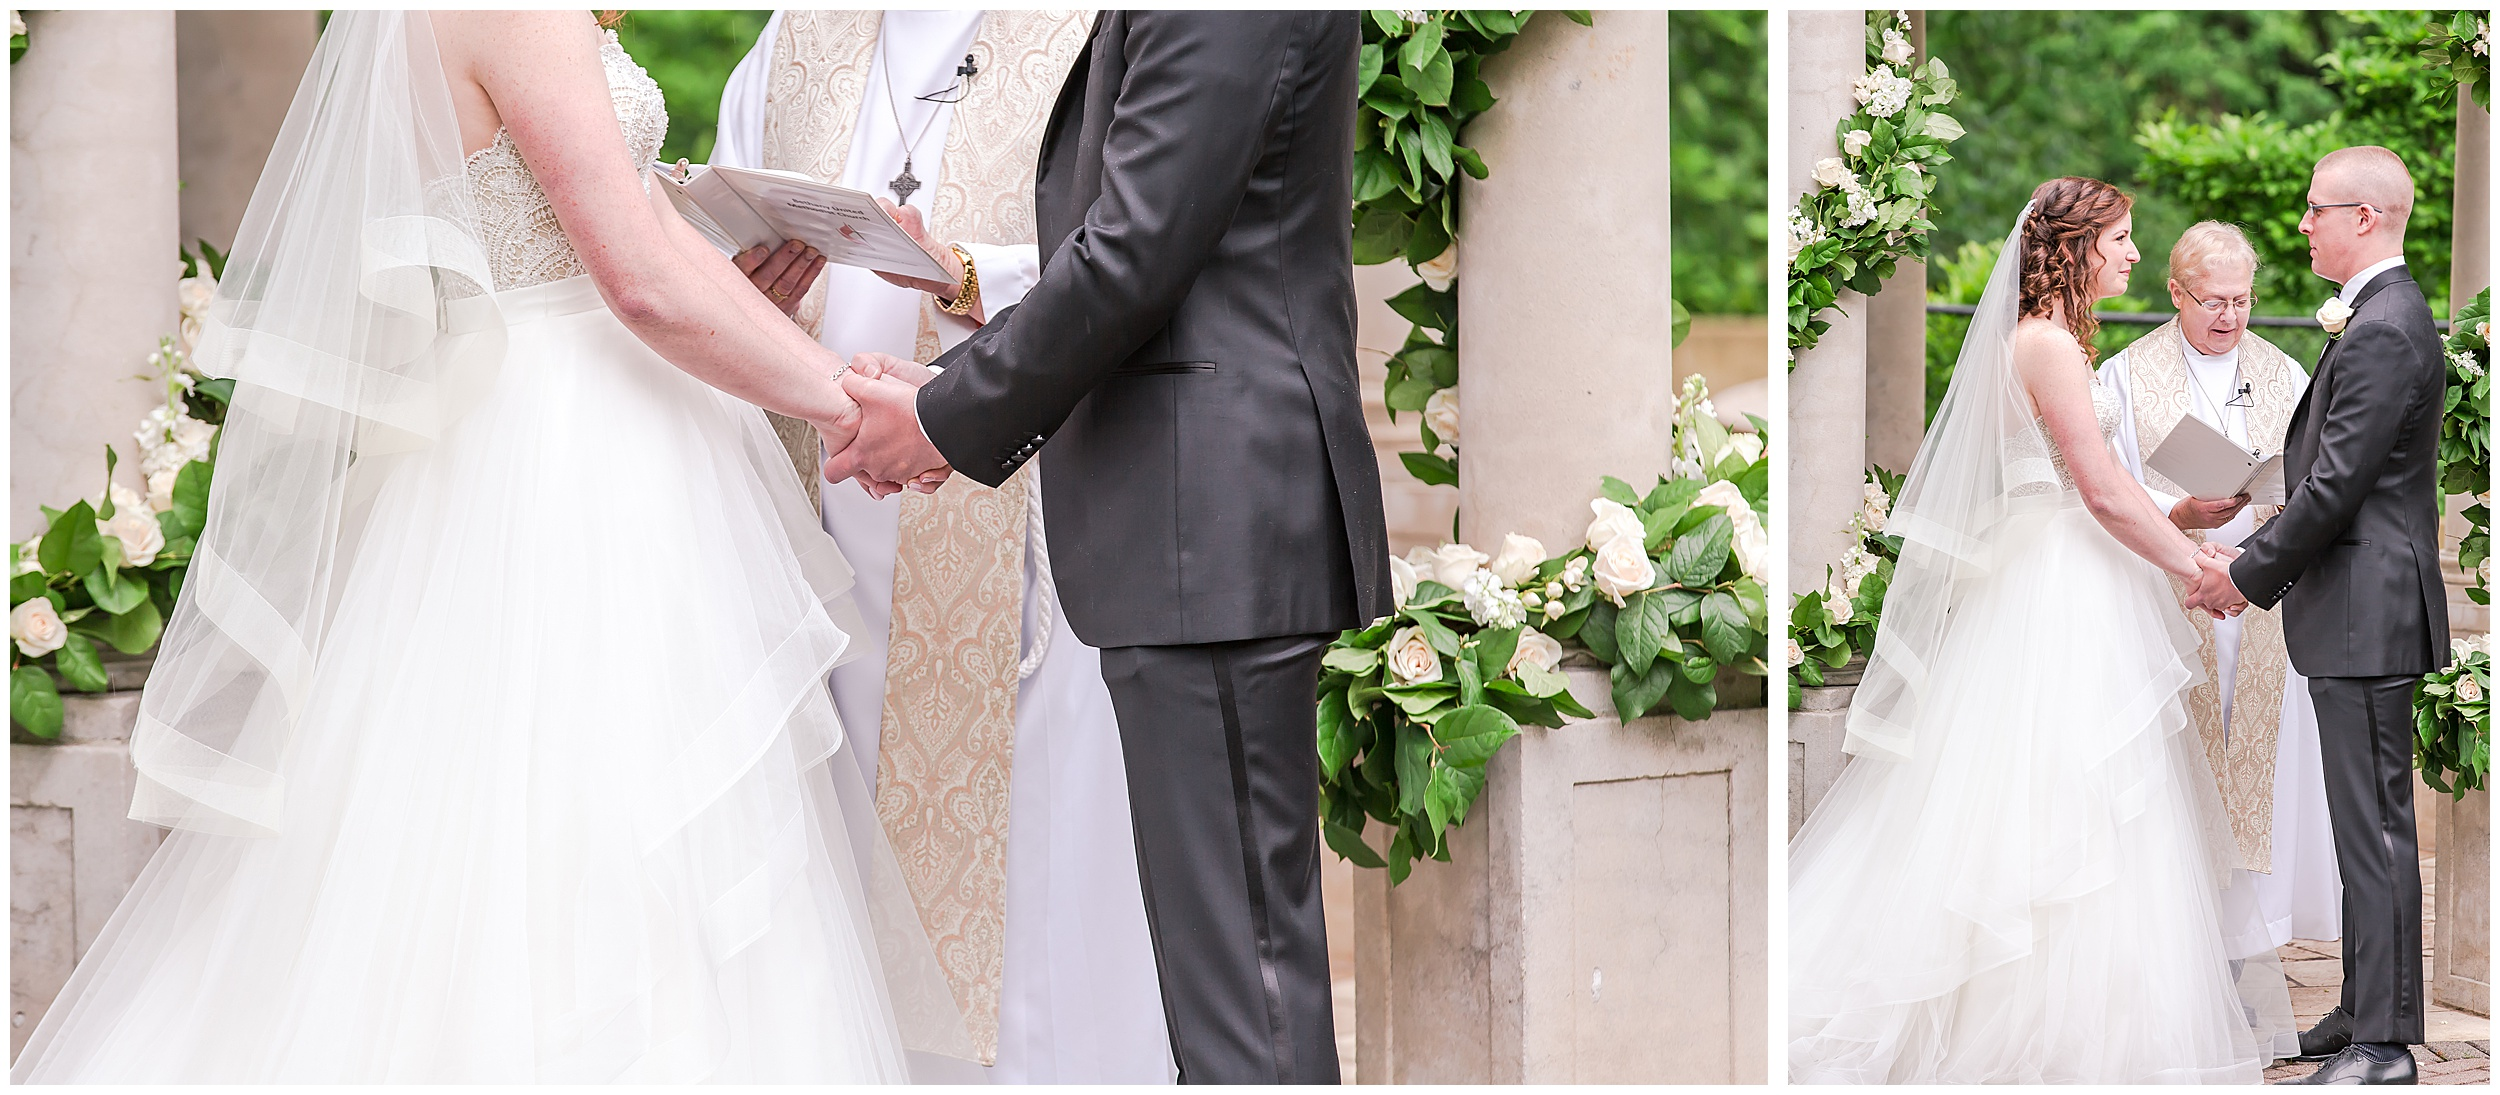 Irish Springtime Omni Shoreham Wedding ceremony-wedding-hands-holding-priest-outdoors